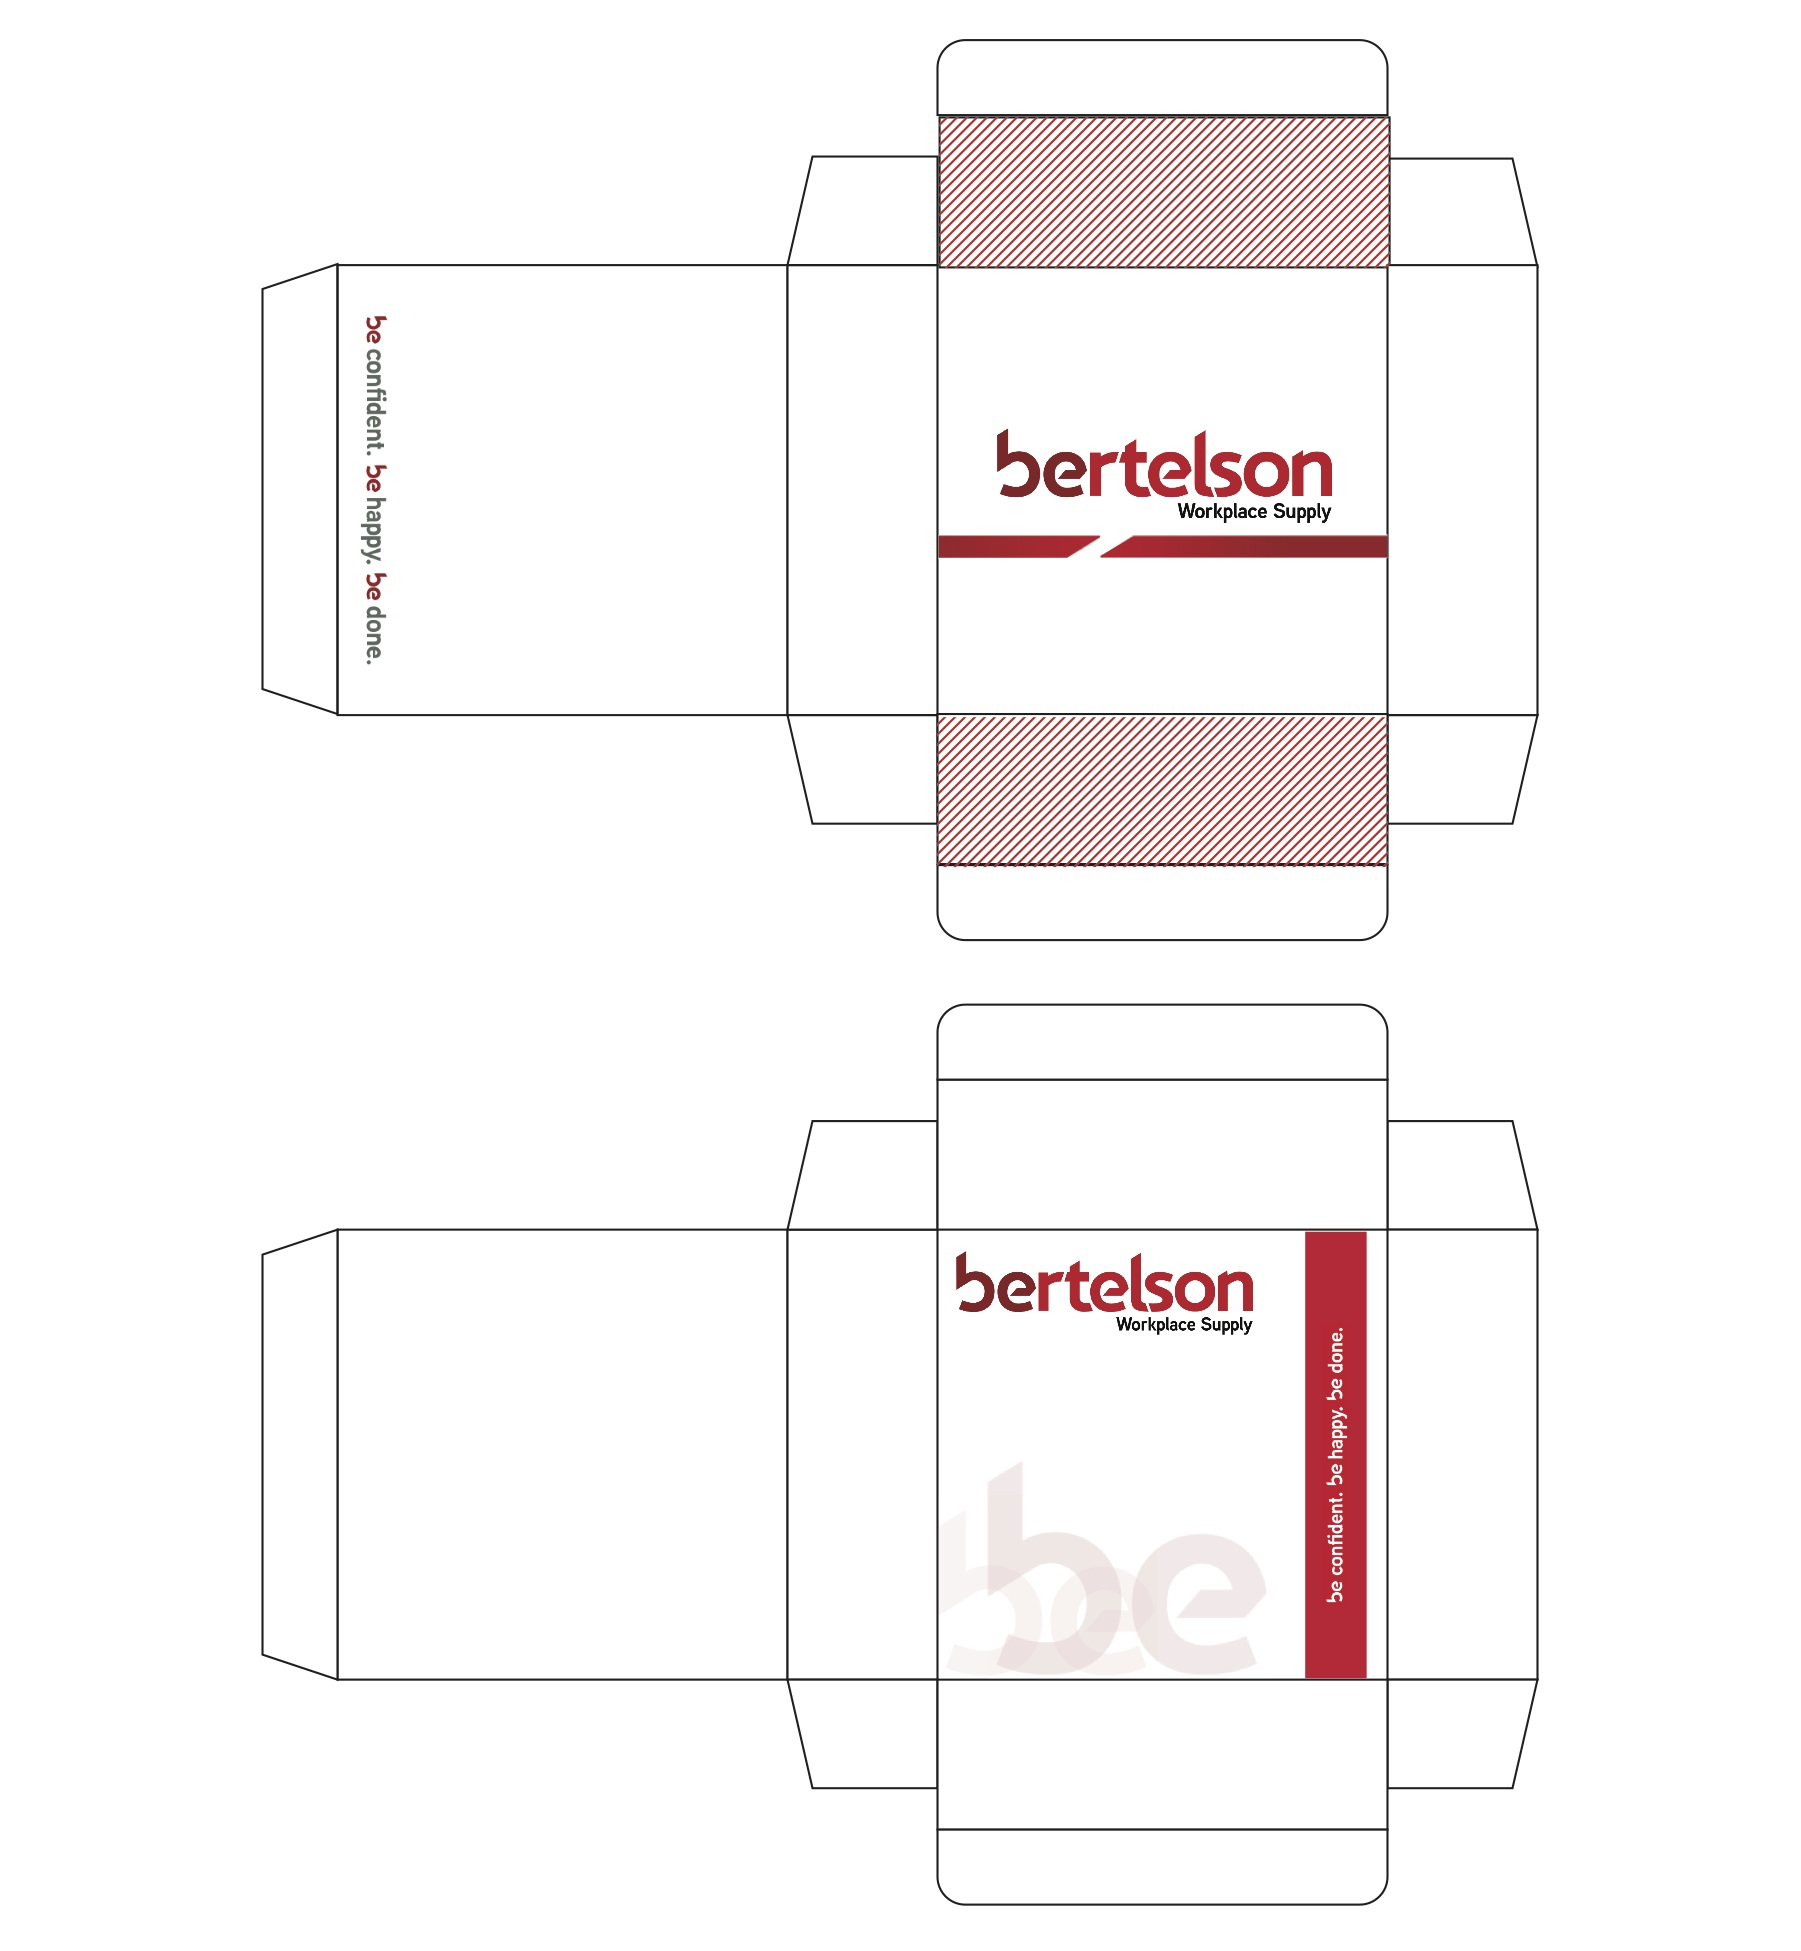 Superieur Package Design U2013 Created And Designed A Container For Bertelson Office  Supplies With Printed Graphics To Send Out The Annual Office Catalogs.